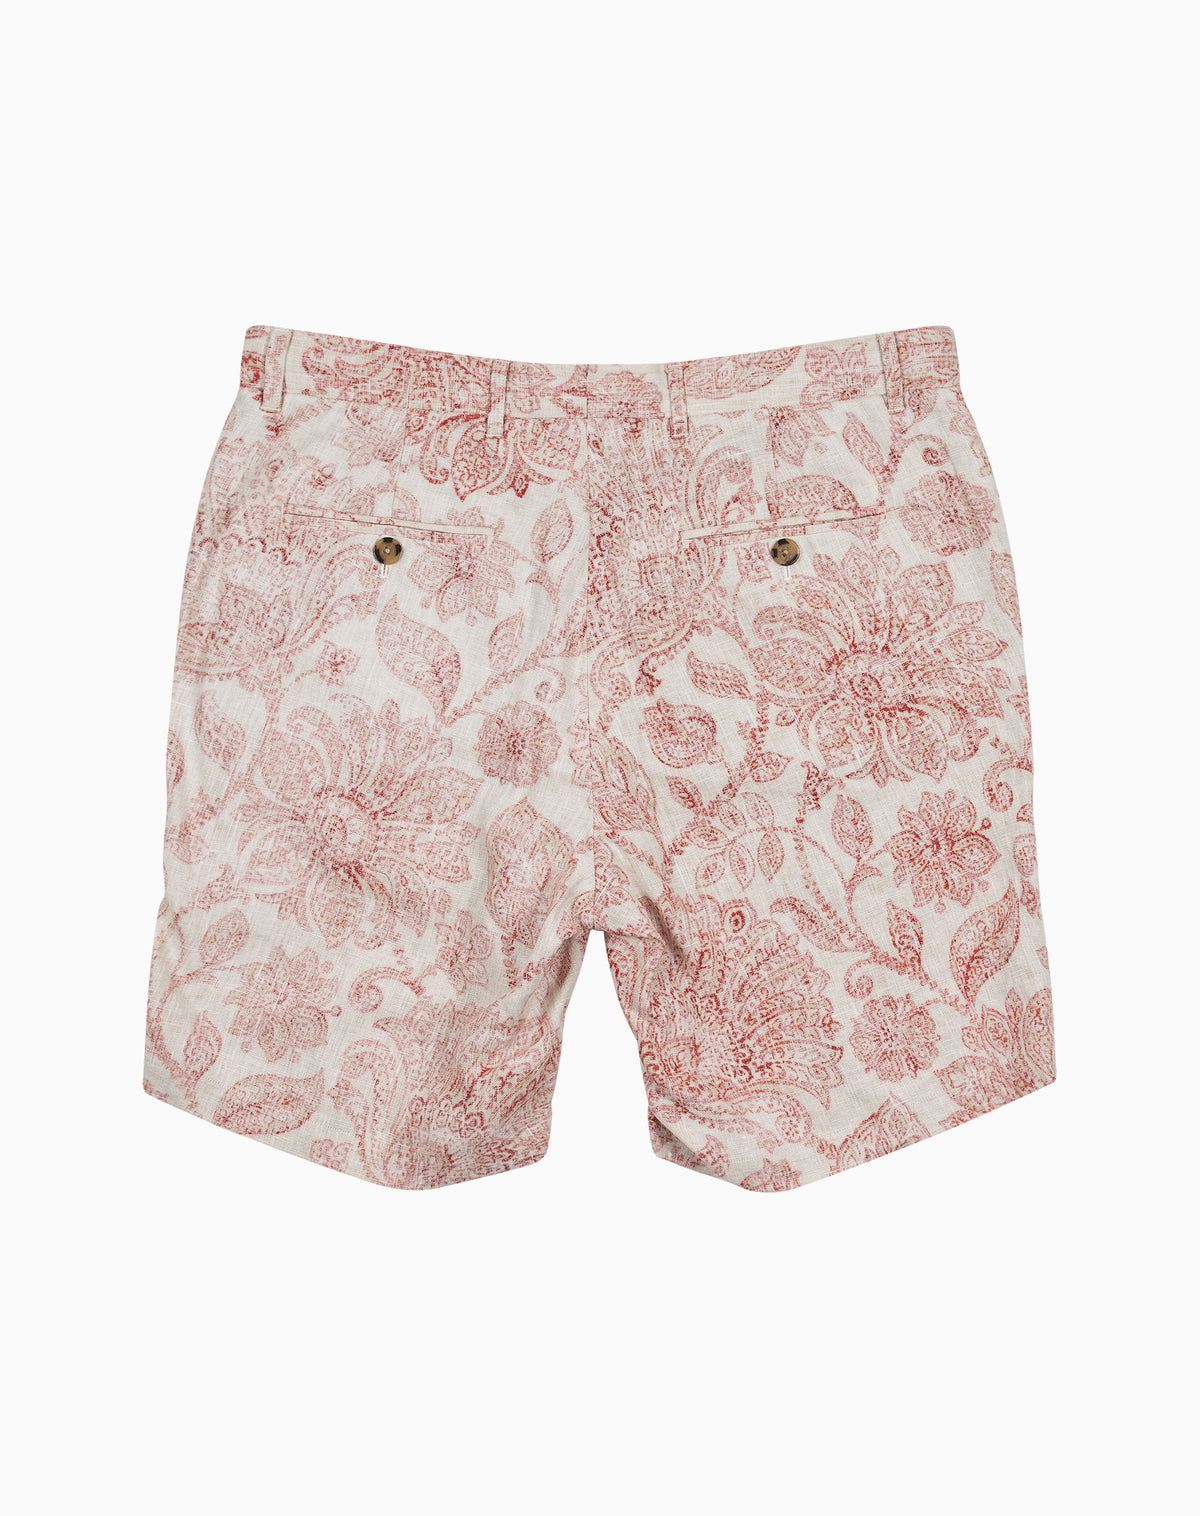 Printed Short in Red Floral